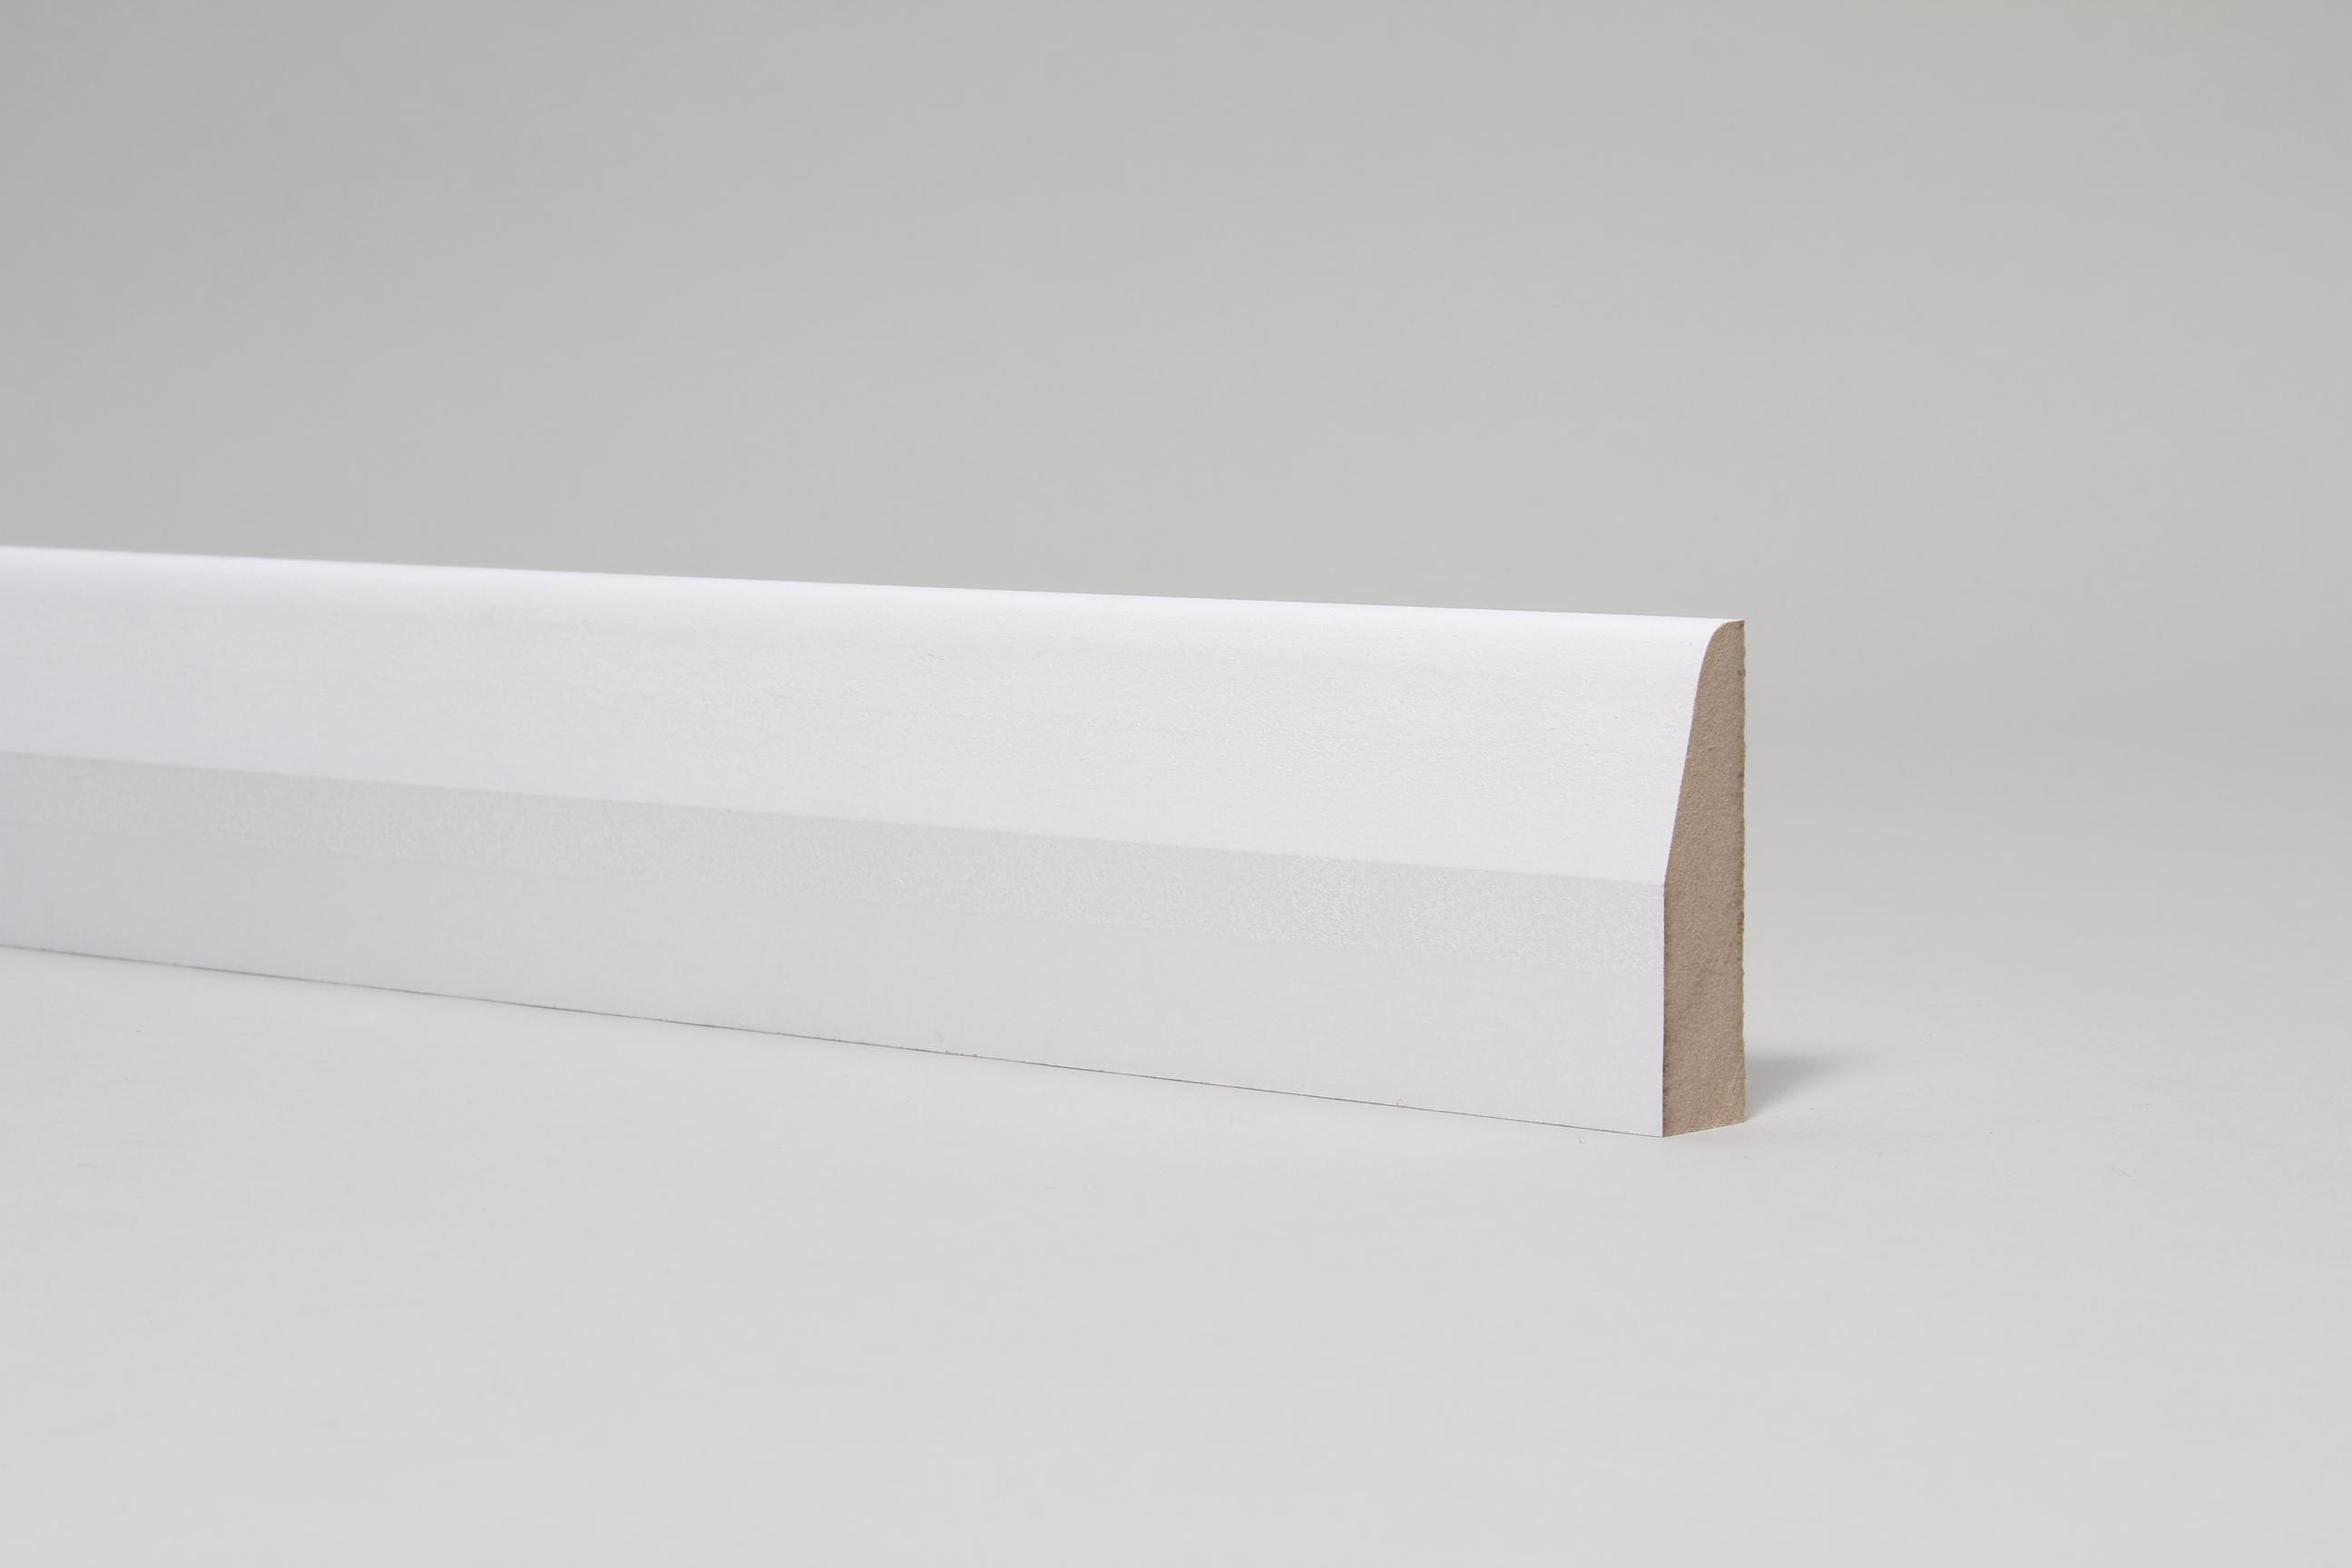 Chamfered & Rounded 18mm x 68mm Architrave Set Primed